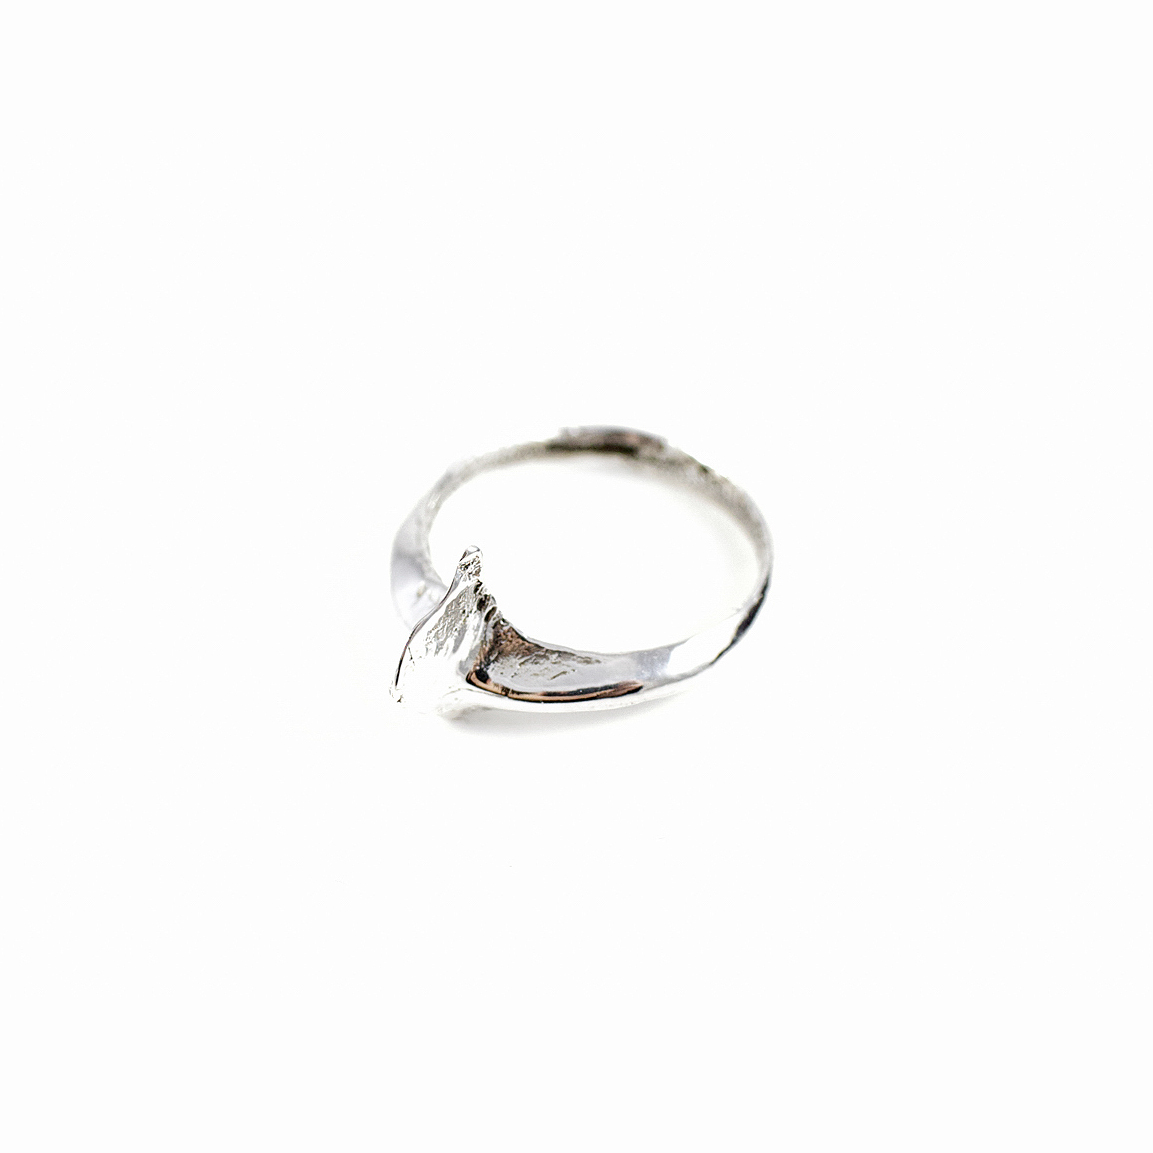 Wish Ring | Sterling silver, patina.